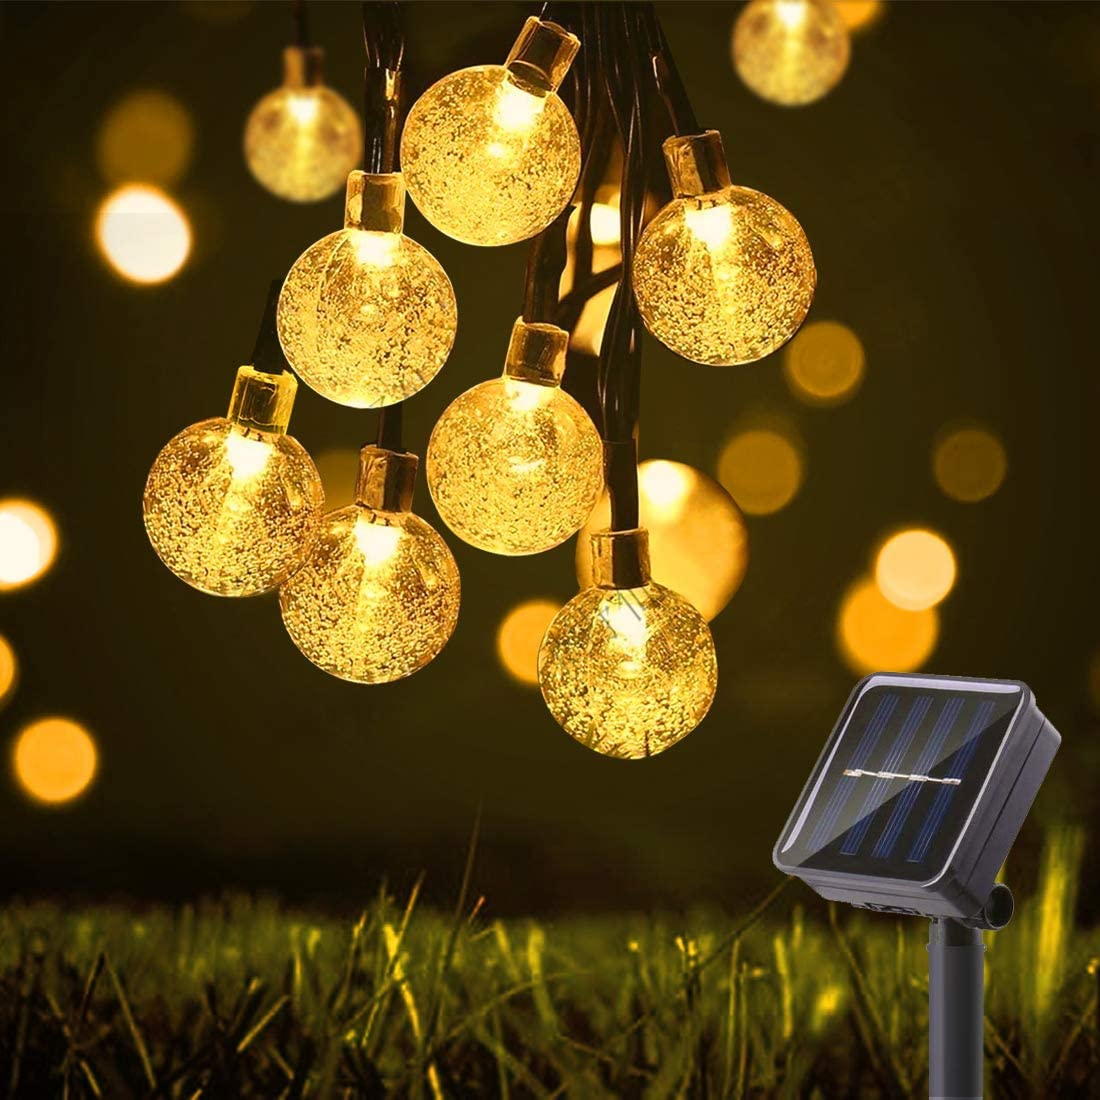 29.5Ft 50 LED Bulbs Diameter 1.7cm Solar String Lights Waterproof Globe Bulbs 8 Modes Decorative Lighting Fairy Lights for Christmas Decoration, Garden, Porch, Patio, Gazebo, Bistro, Xmas Lights